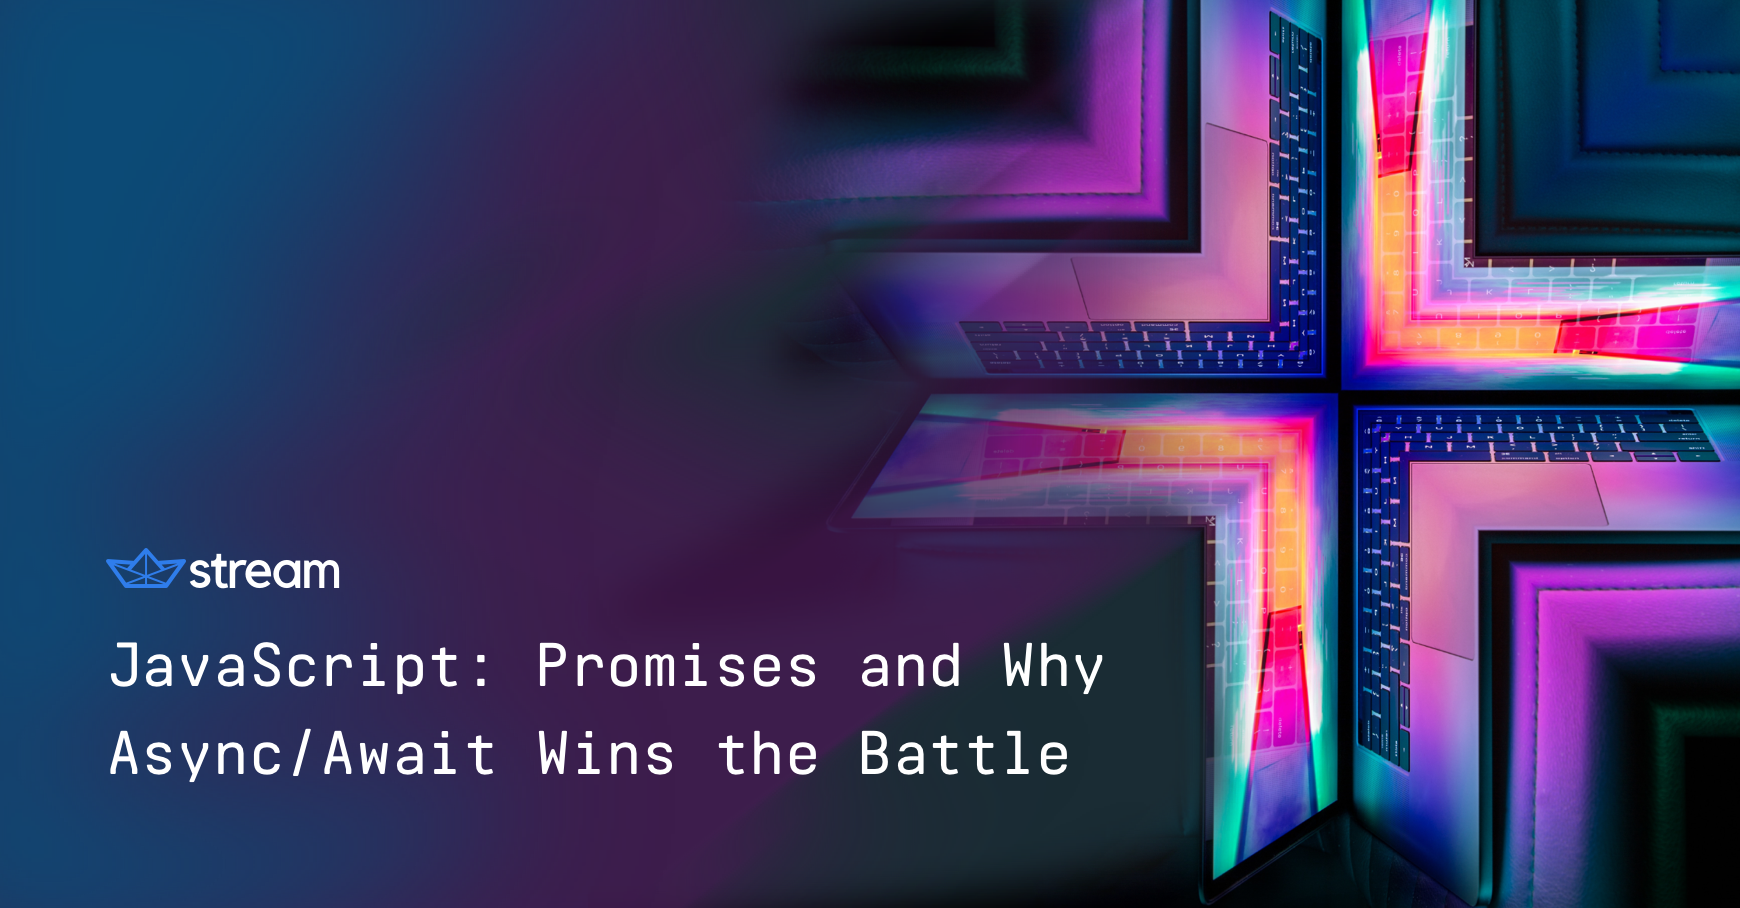 JavaScript: Promises and Why Async/Await Wins the Battle